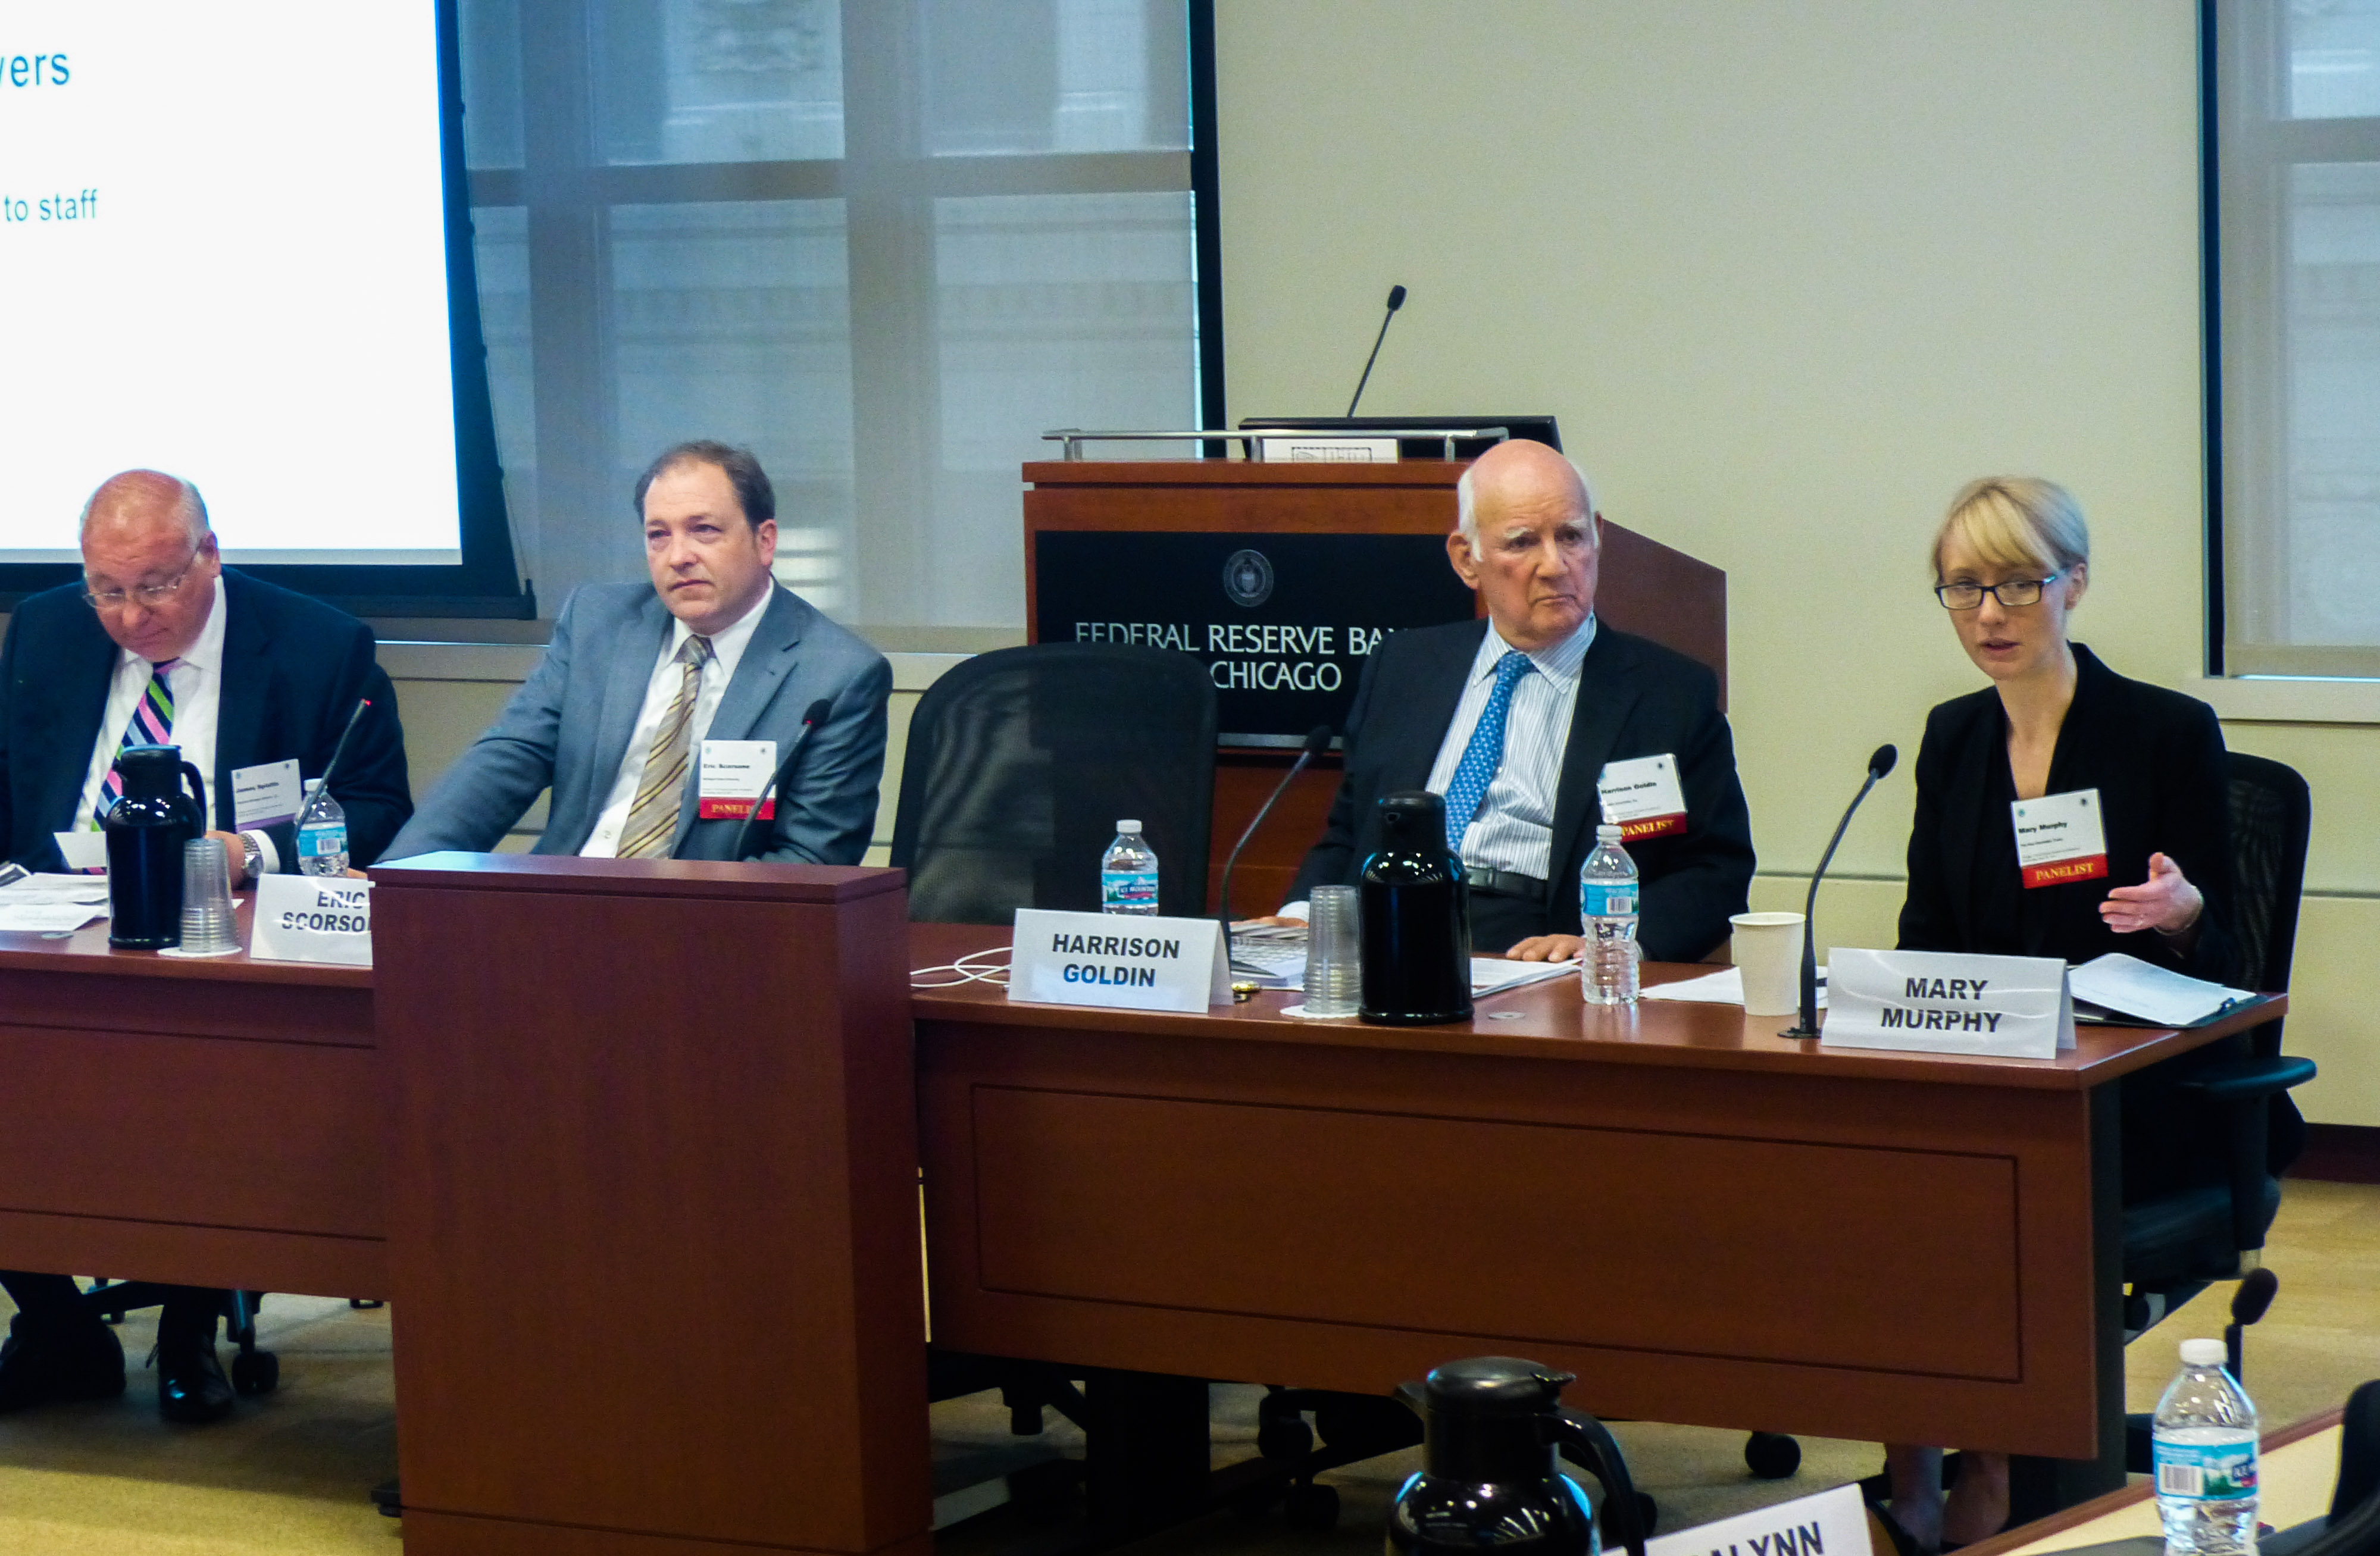 Federal Reserve Bank of Chicago, Civic Federation, annual forum panel